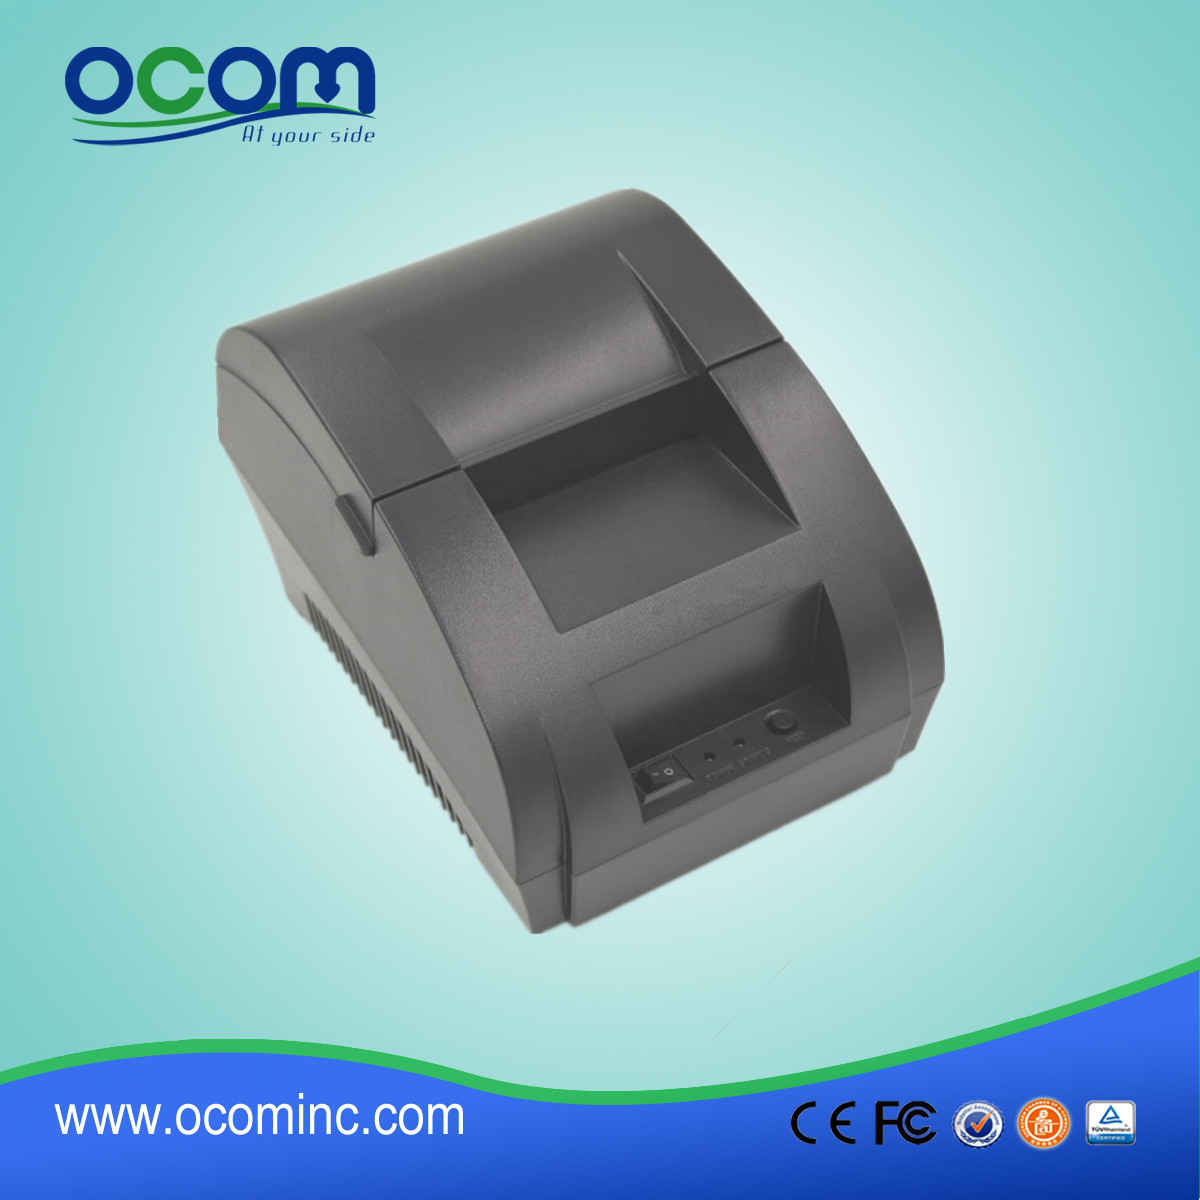 OCPP-585: hot selling 58mm pos printer thermal bill printer